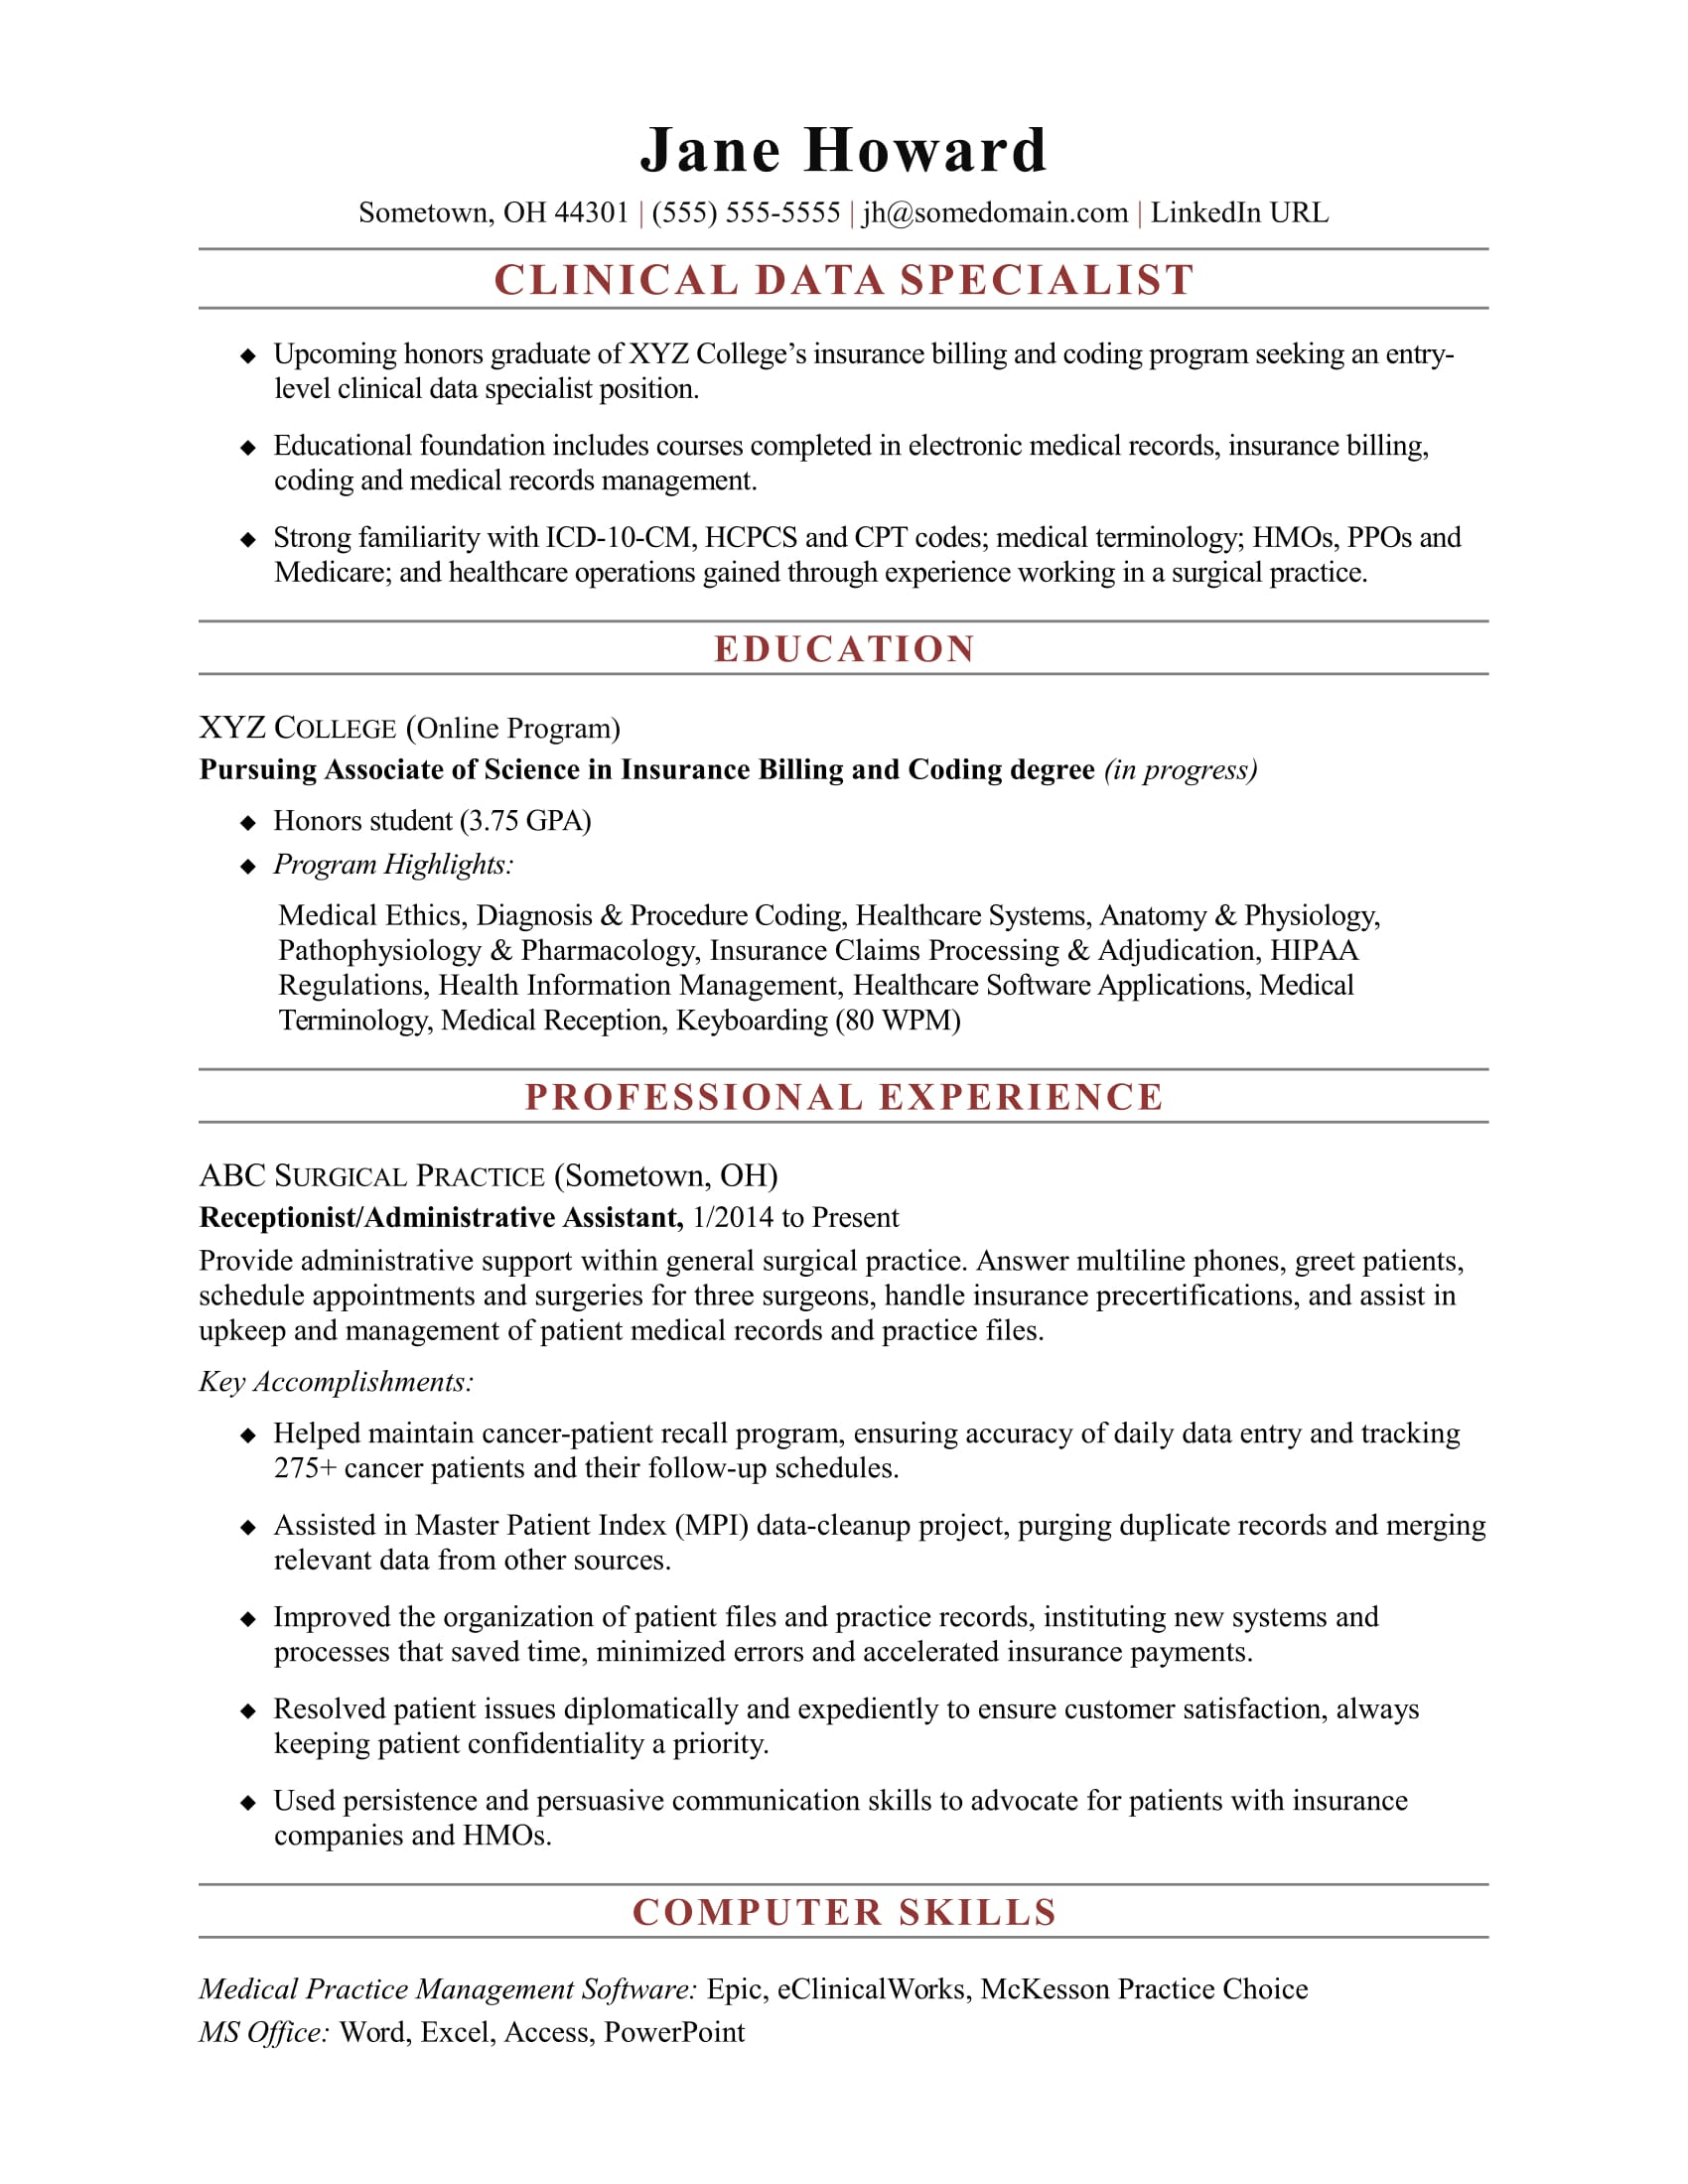 sample resume for an entry level clinical data specialist - Data Entry Resume Sample Skills